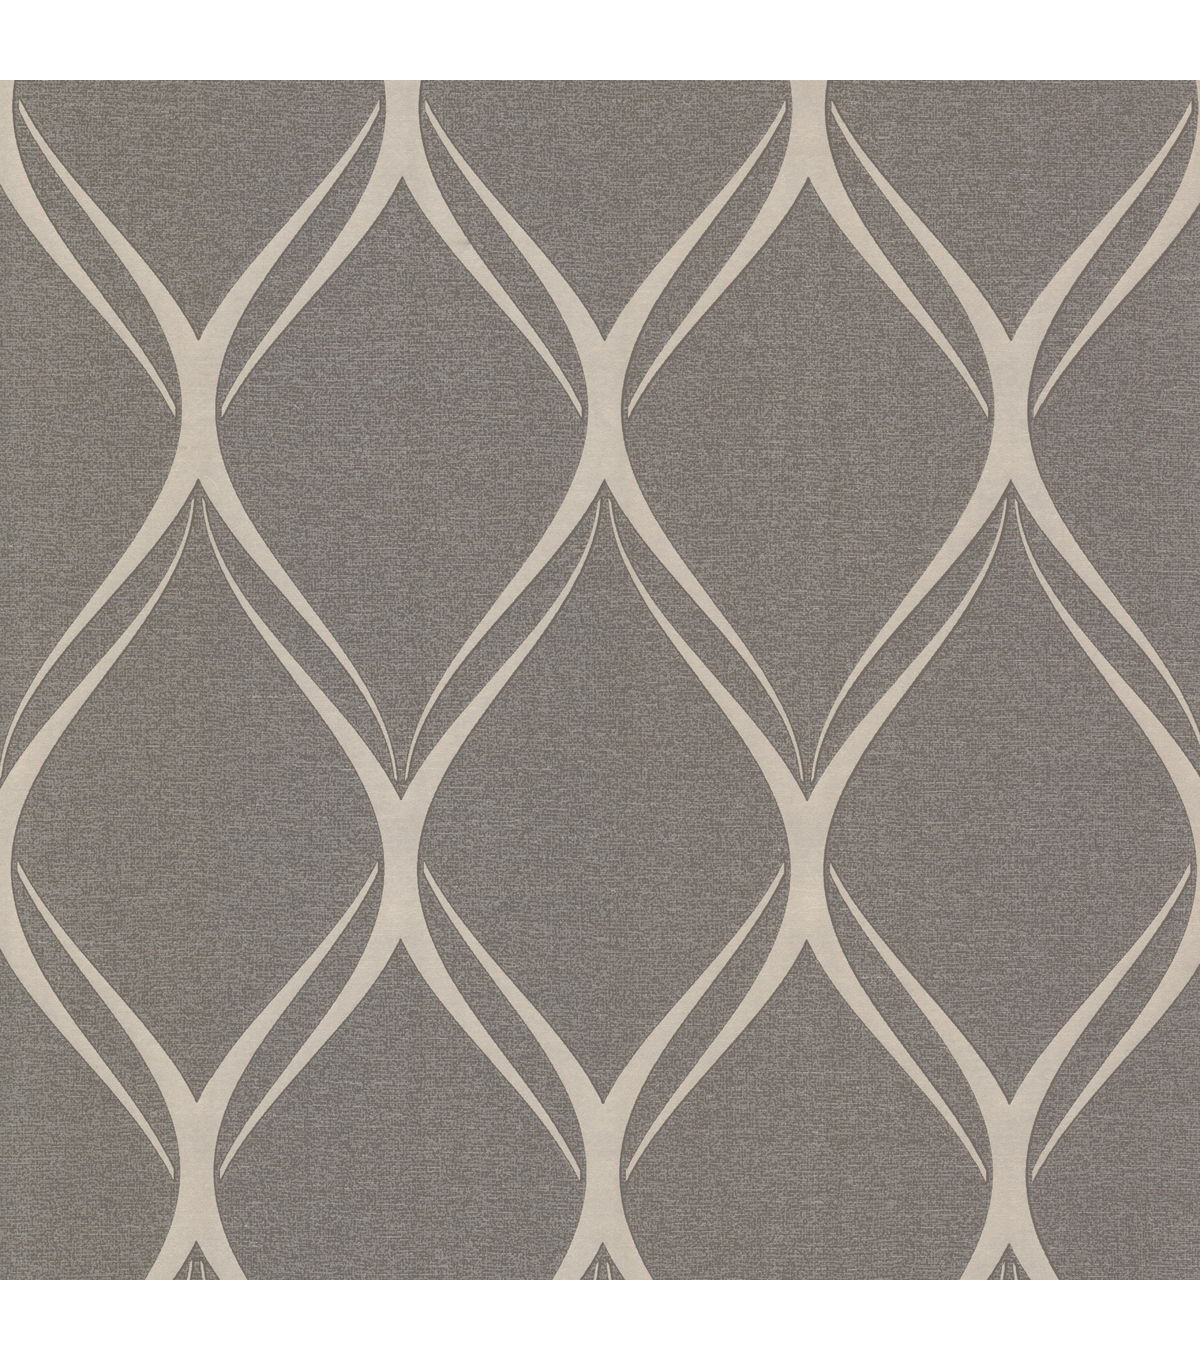 Gustav Brown Geometric WallpaperGustav Brown Geometric Wallpaper 1200x1360